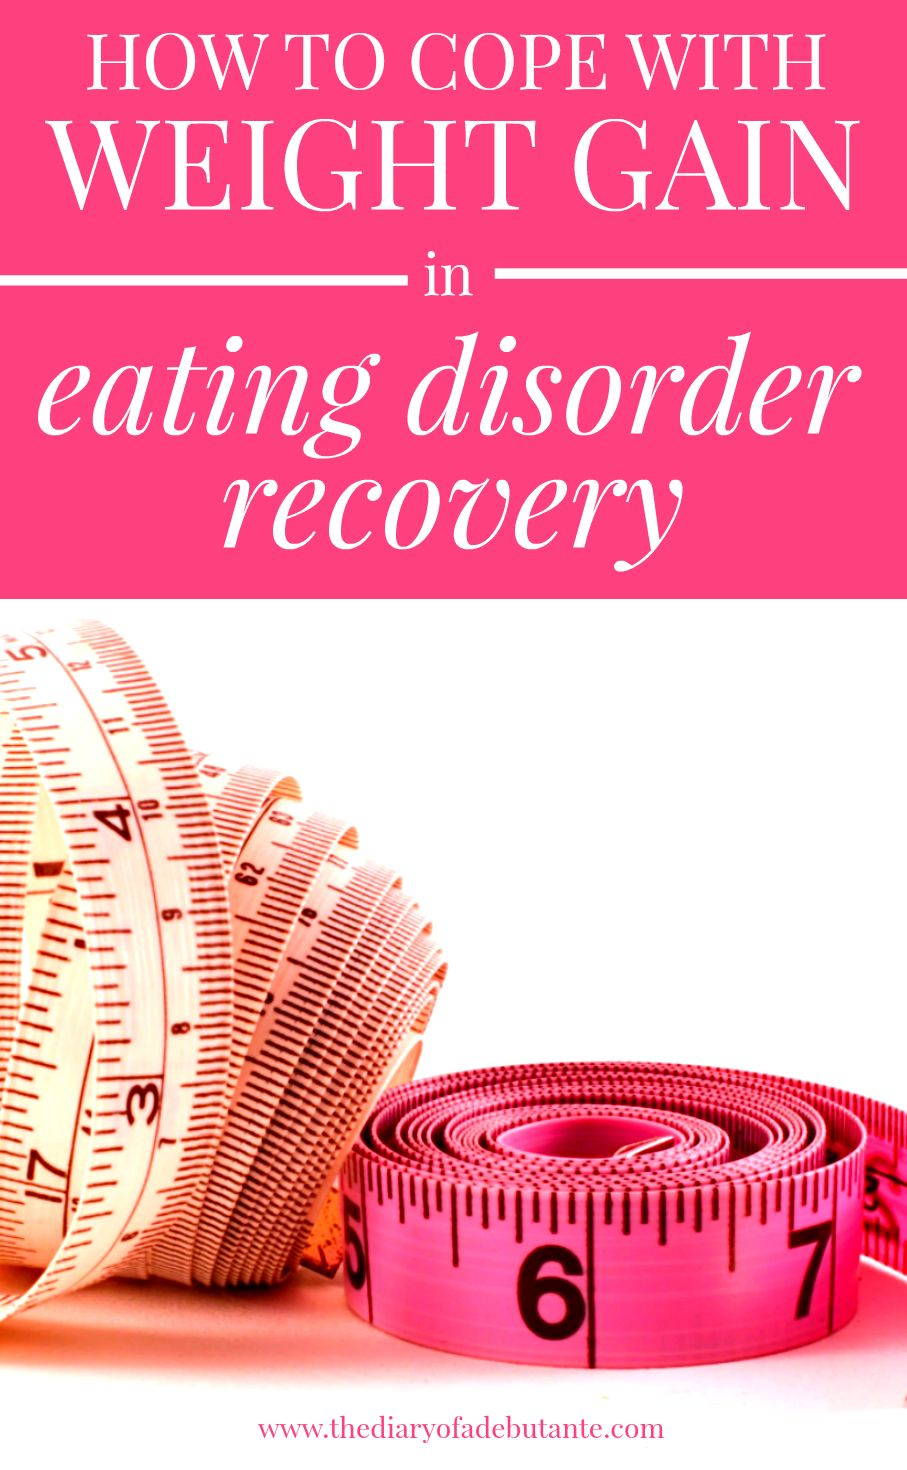 Strategies for coping with weight gain in eating disorder recovery commonly used strategies for coping with weight gain in eating disorder recovery nvjuhfo Choice Image